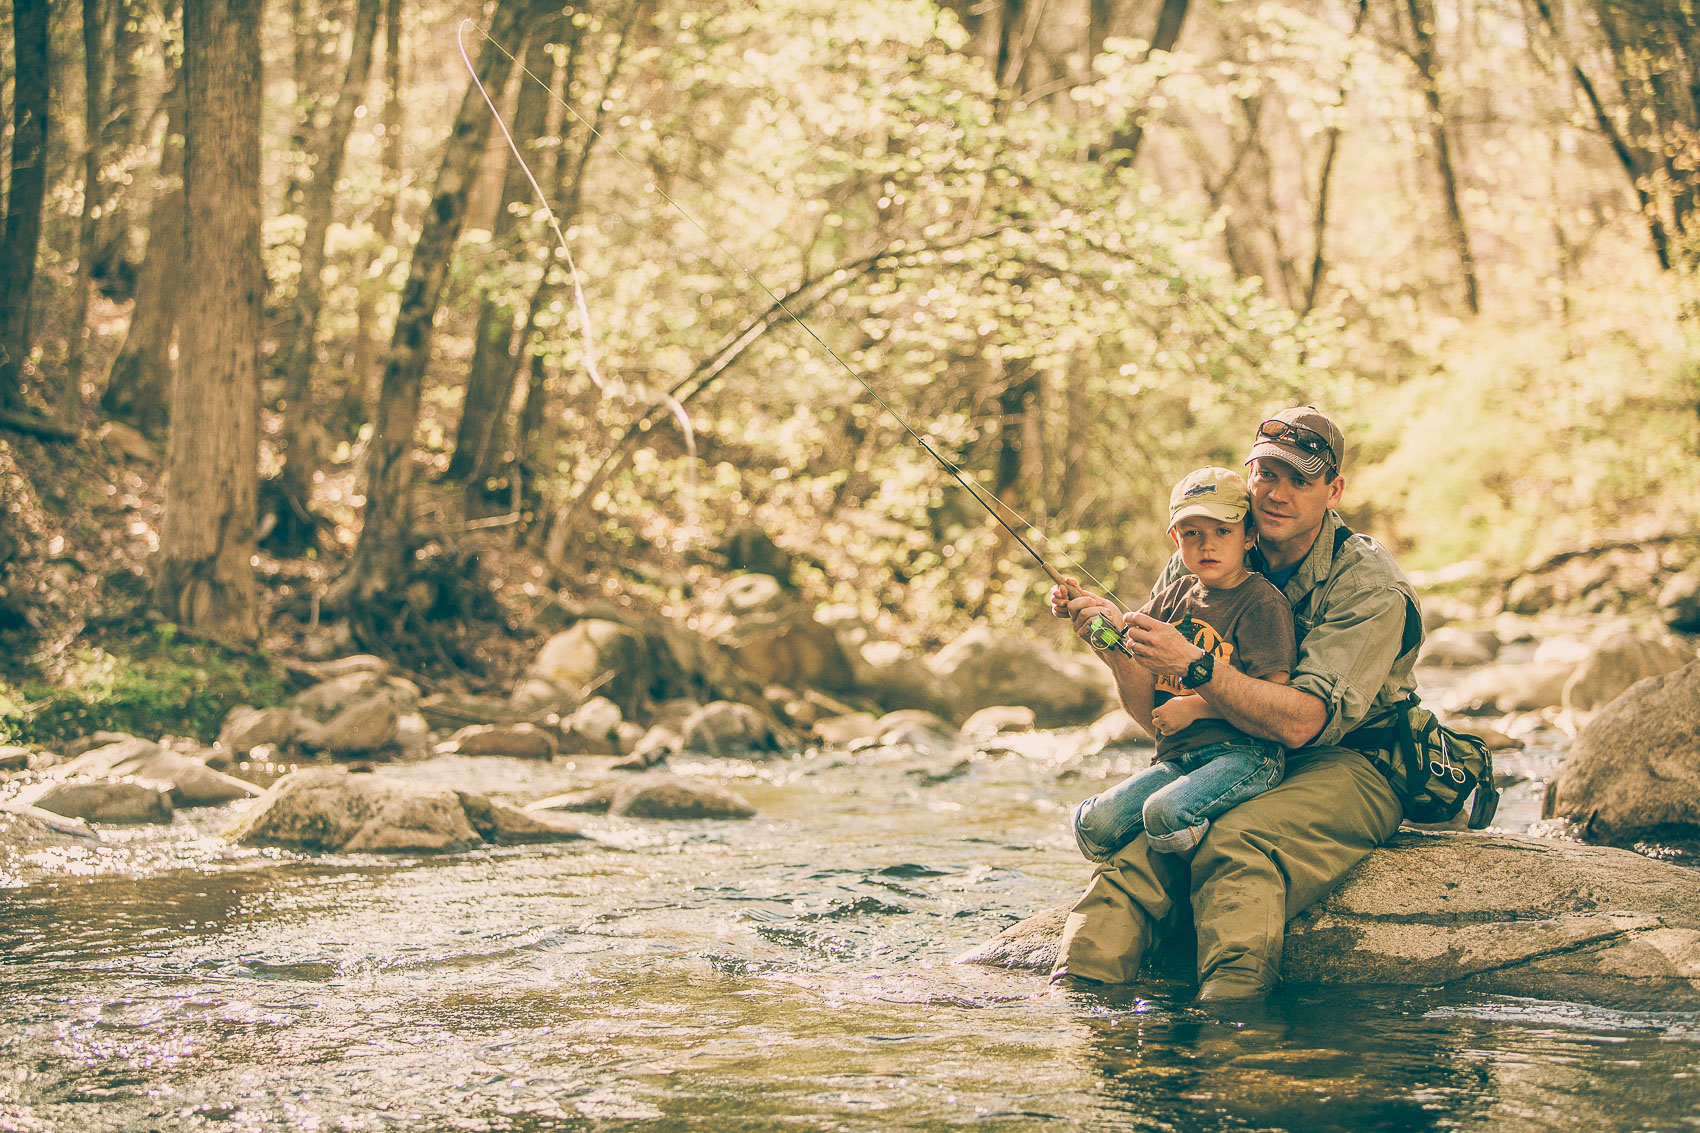 dean-roanoke-virginia-commerical-photographer-tourism-fly-fishing-13